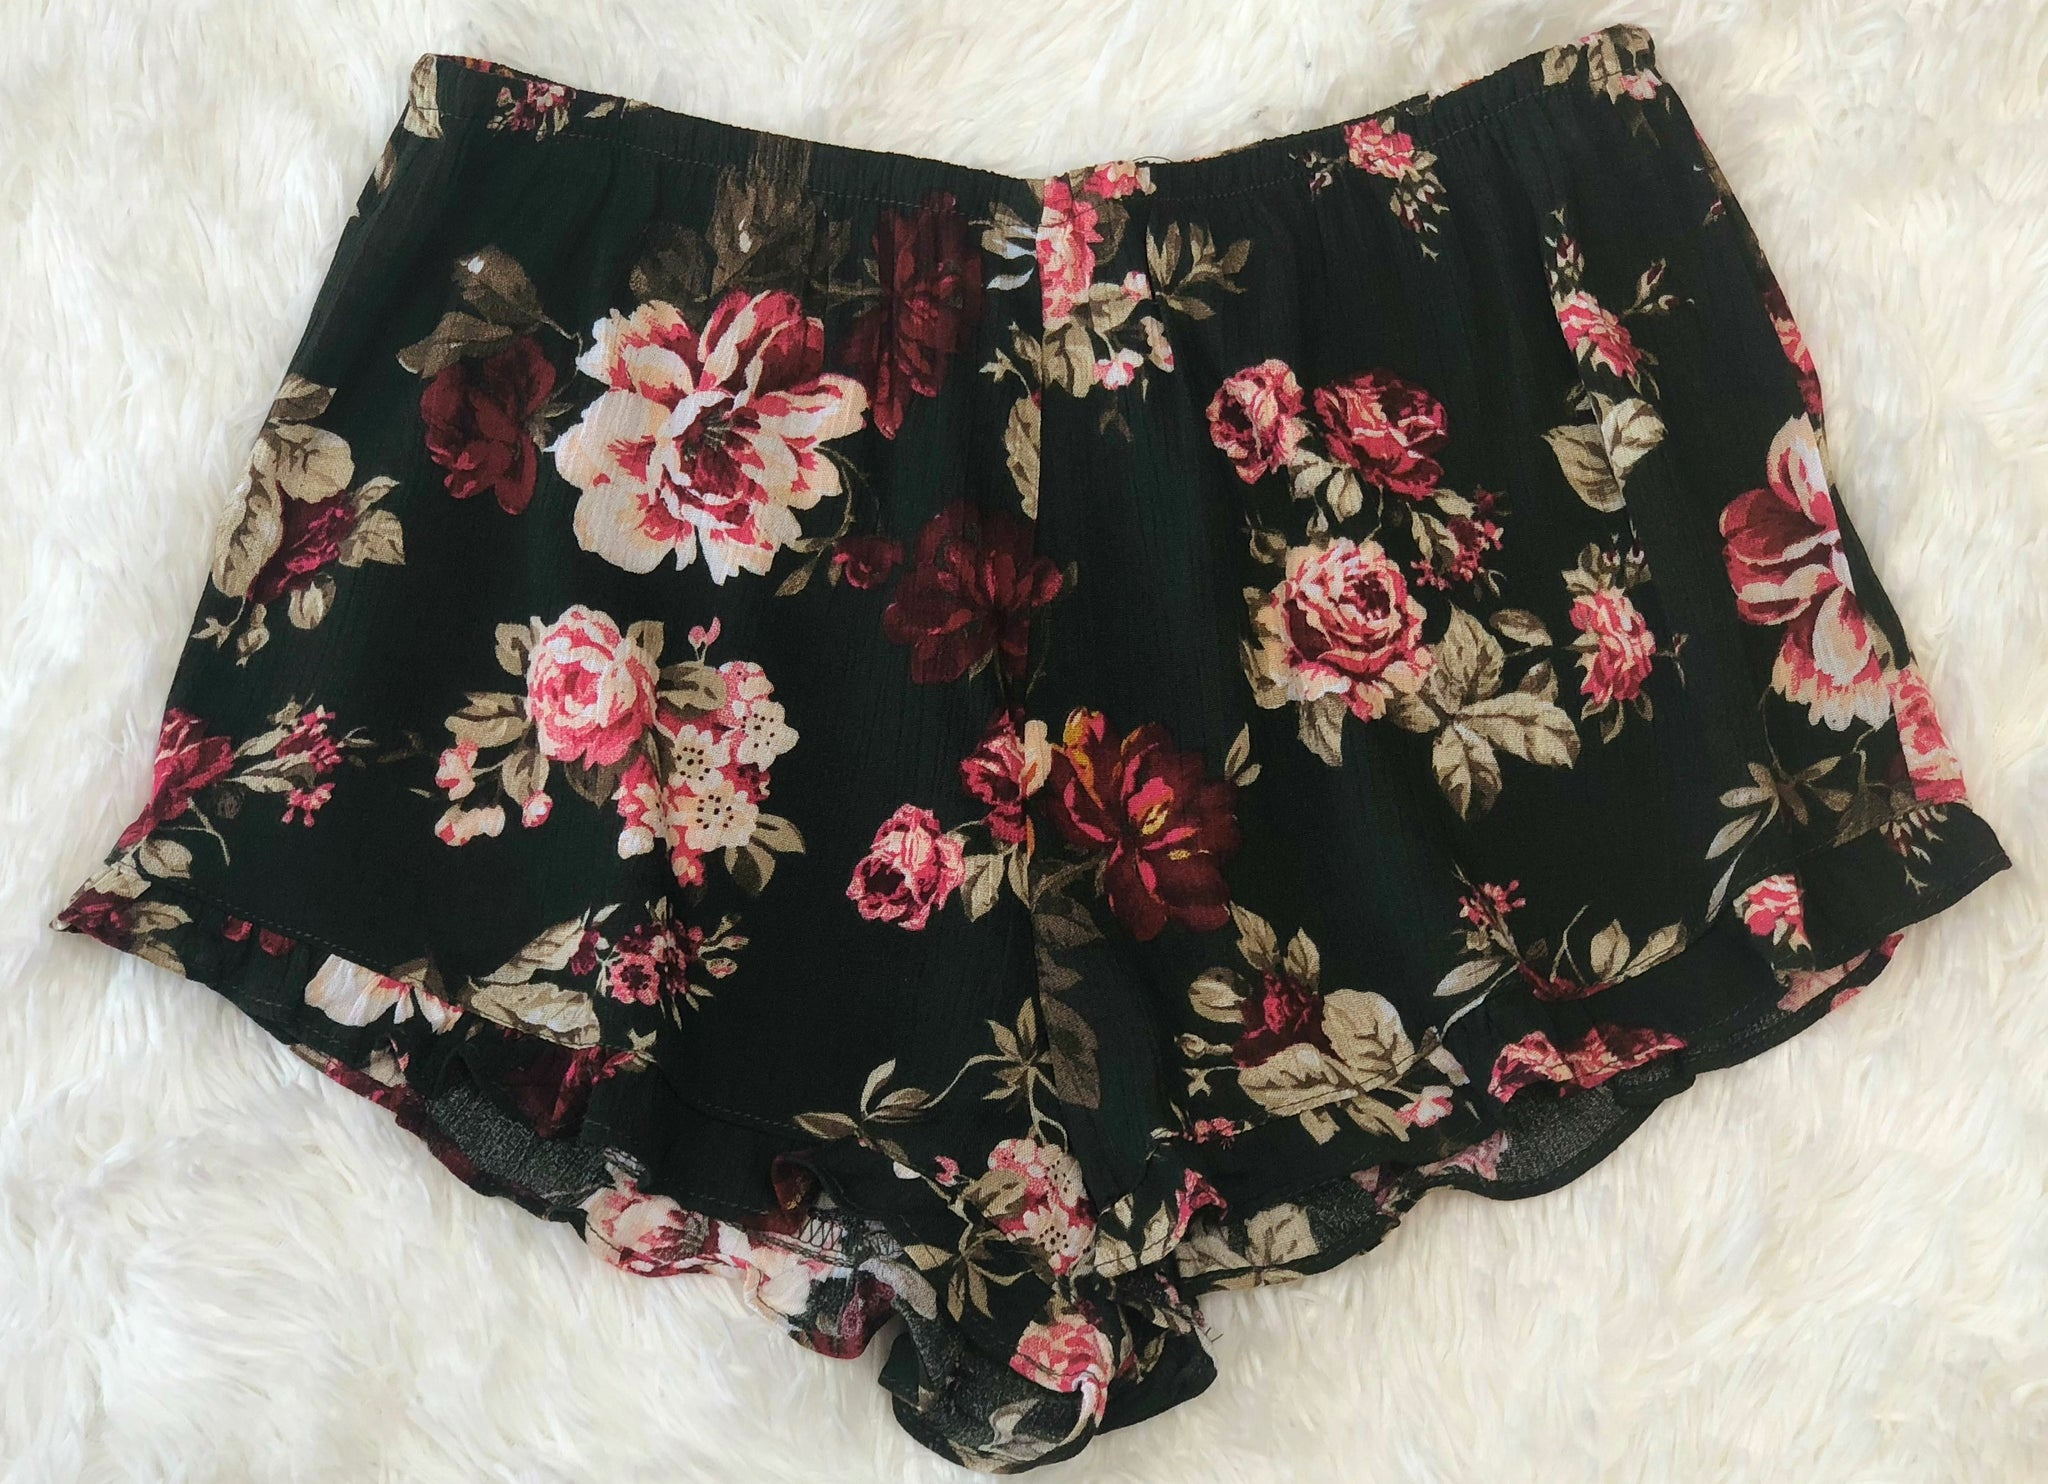 Our Little Secret Floral Shorts: Olive